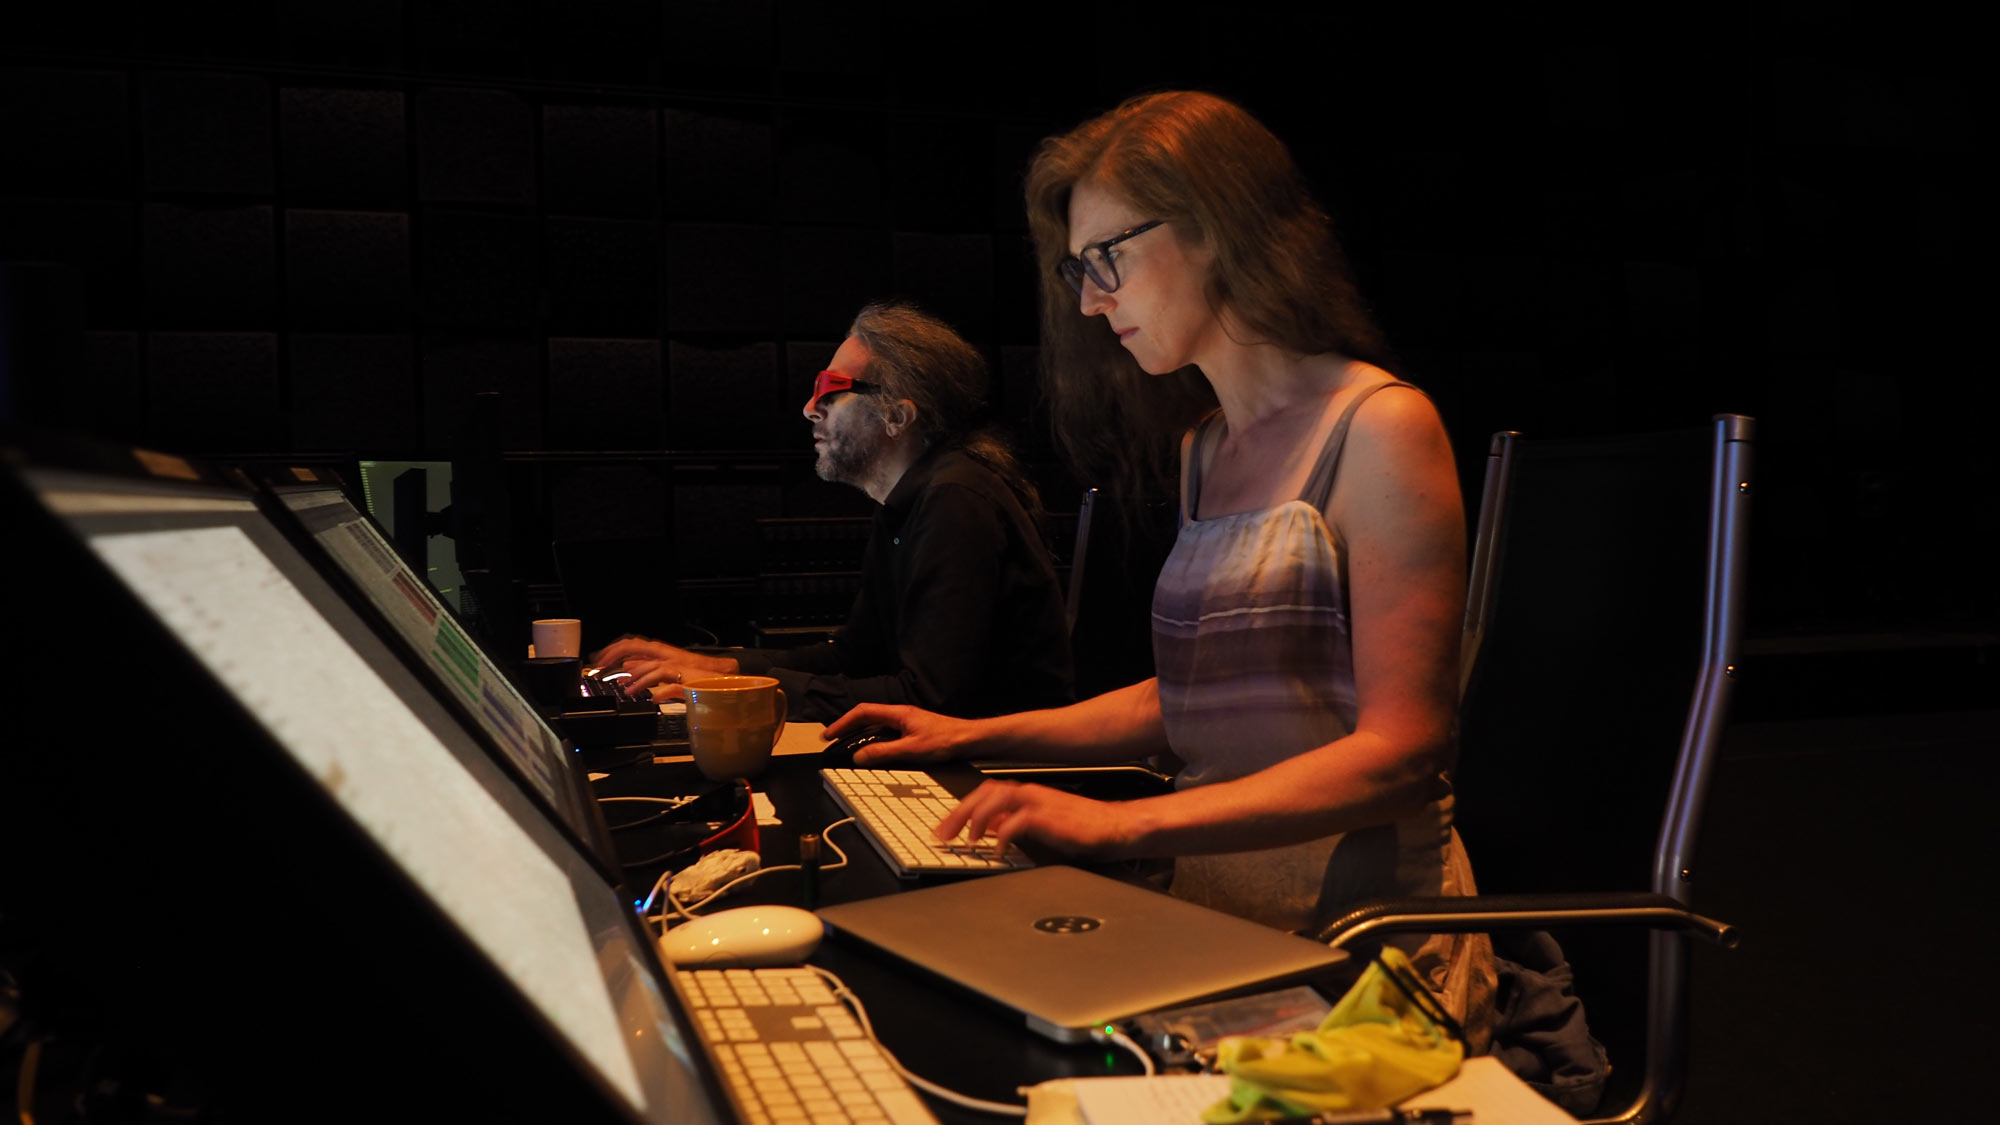 Natasha Barrett and Marc Downie working on Innermost at EMPAC during the Spatial Audio Summer Seminar in 2019.